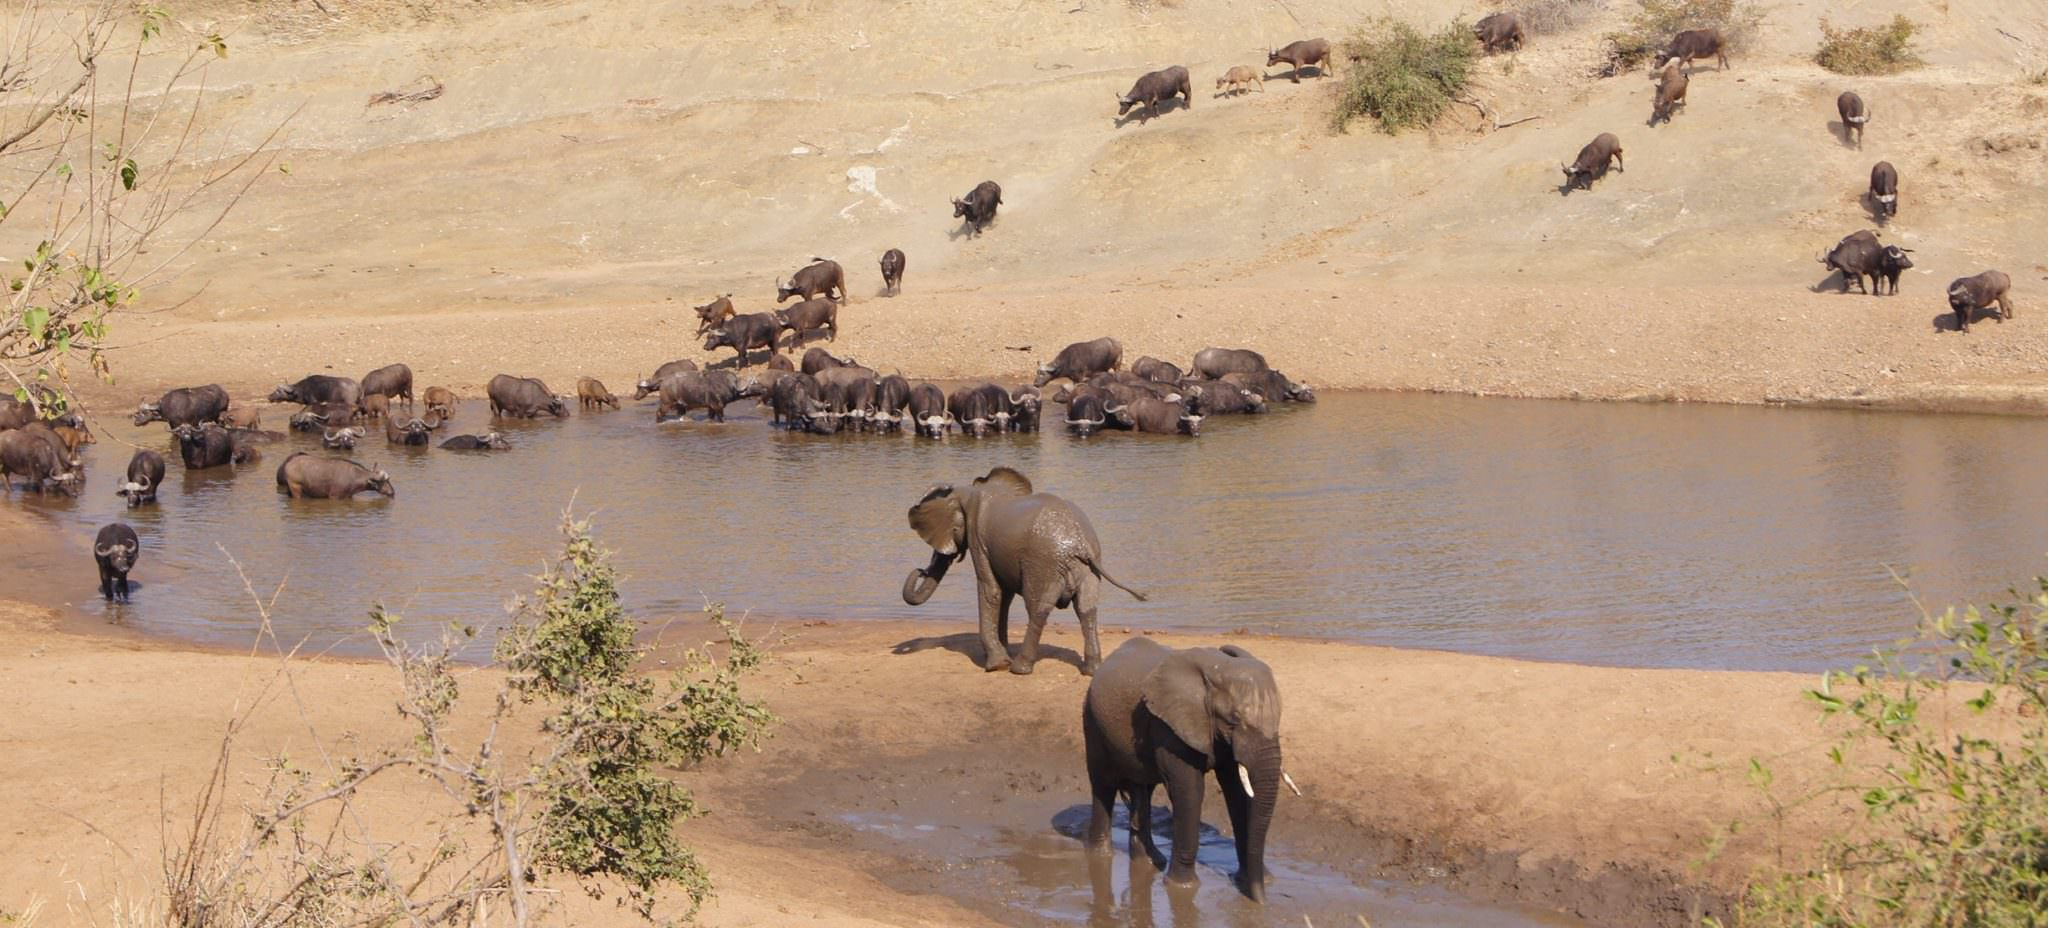 Herd of elephants and buffalo crossing a river